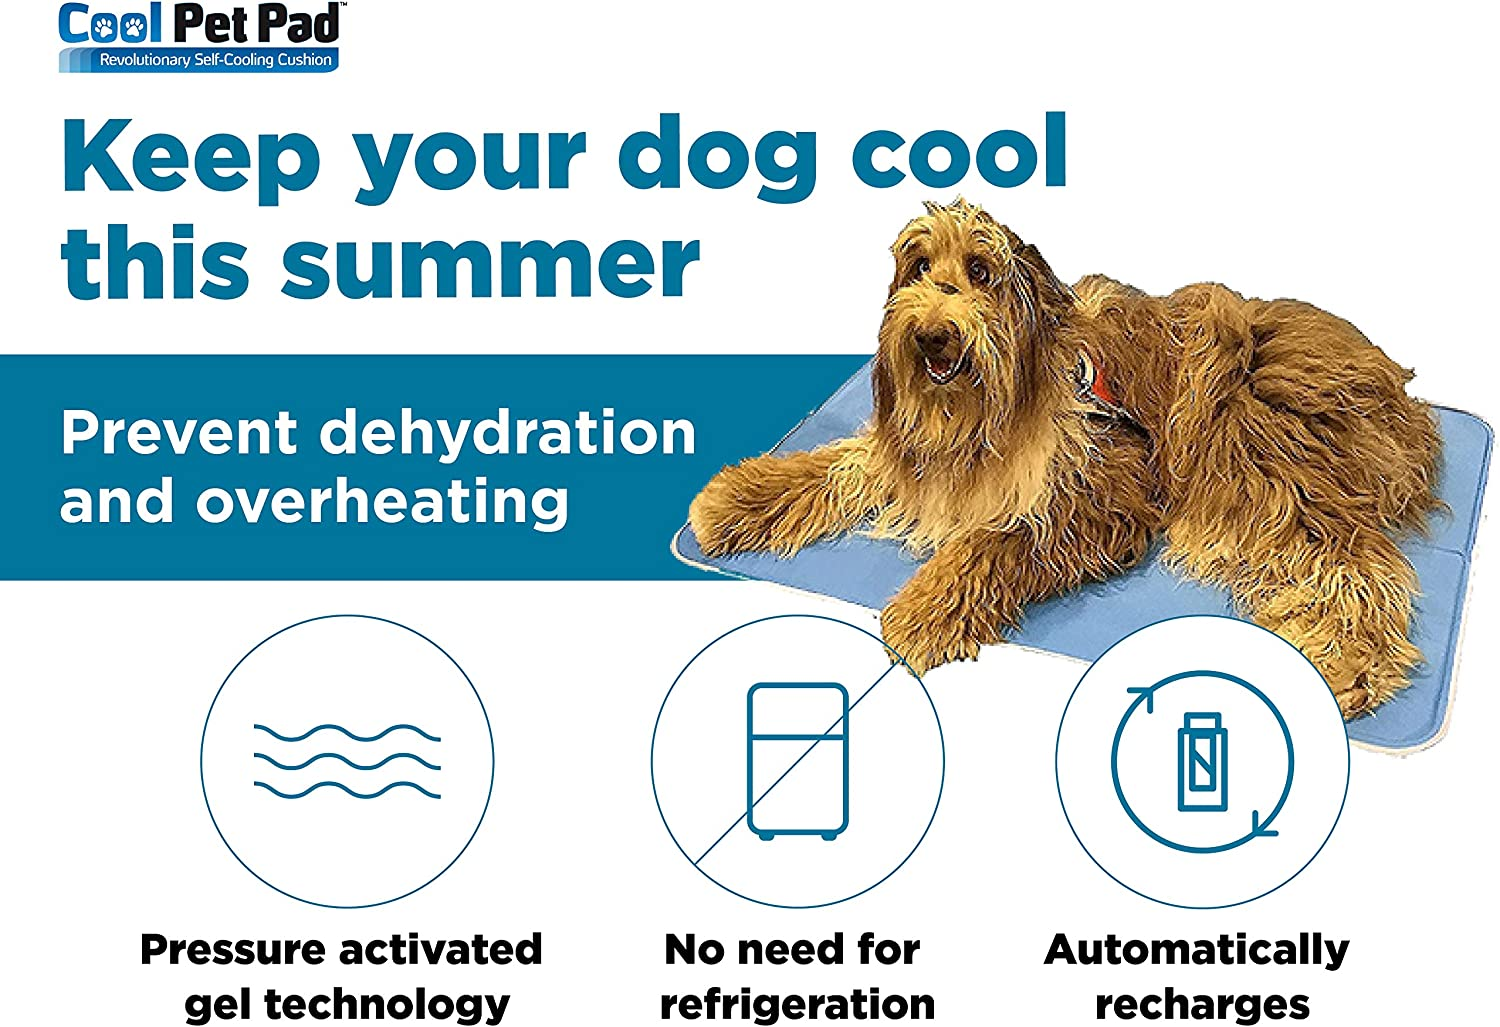 This Pet Cooling Gel Pad Keeps Dogs and Cats Cool in Warm Weather No Water or Electricity Needed Gel Self Cooling Mat for Dogs TheGreenPetShop Dog Cooling Mat Pressure Activated